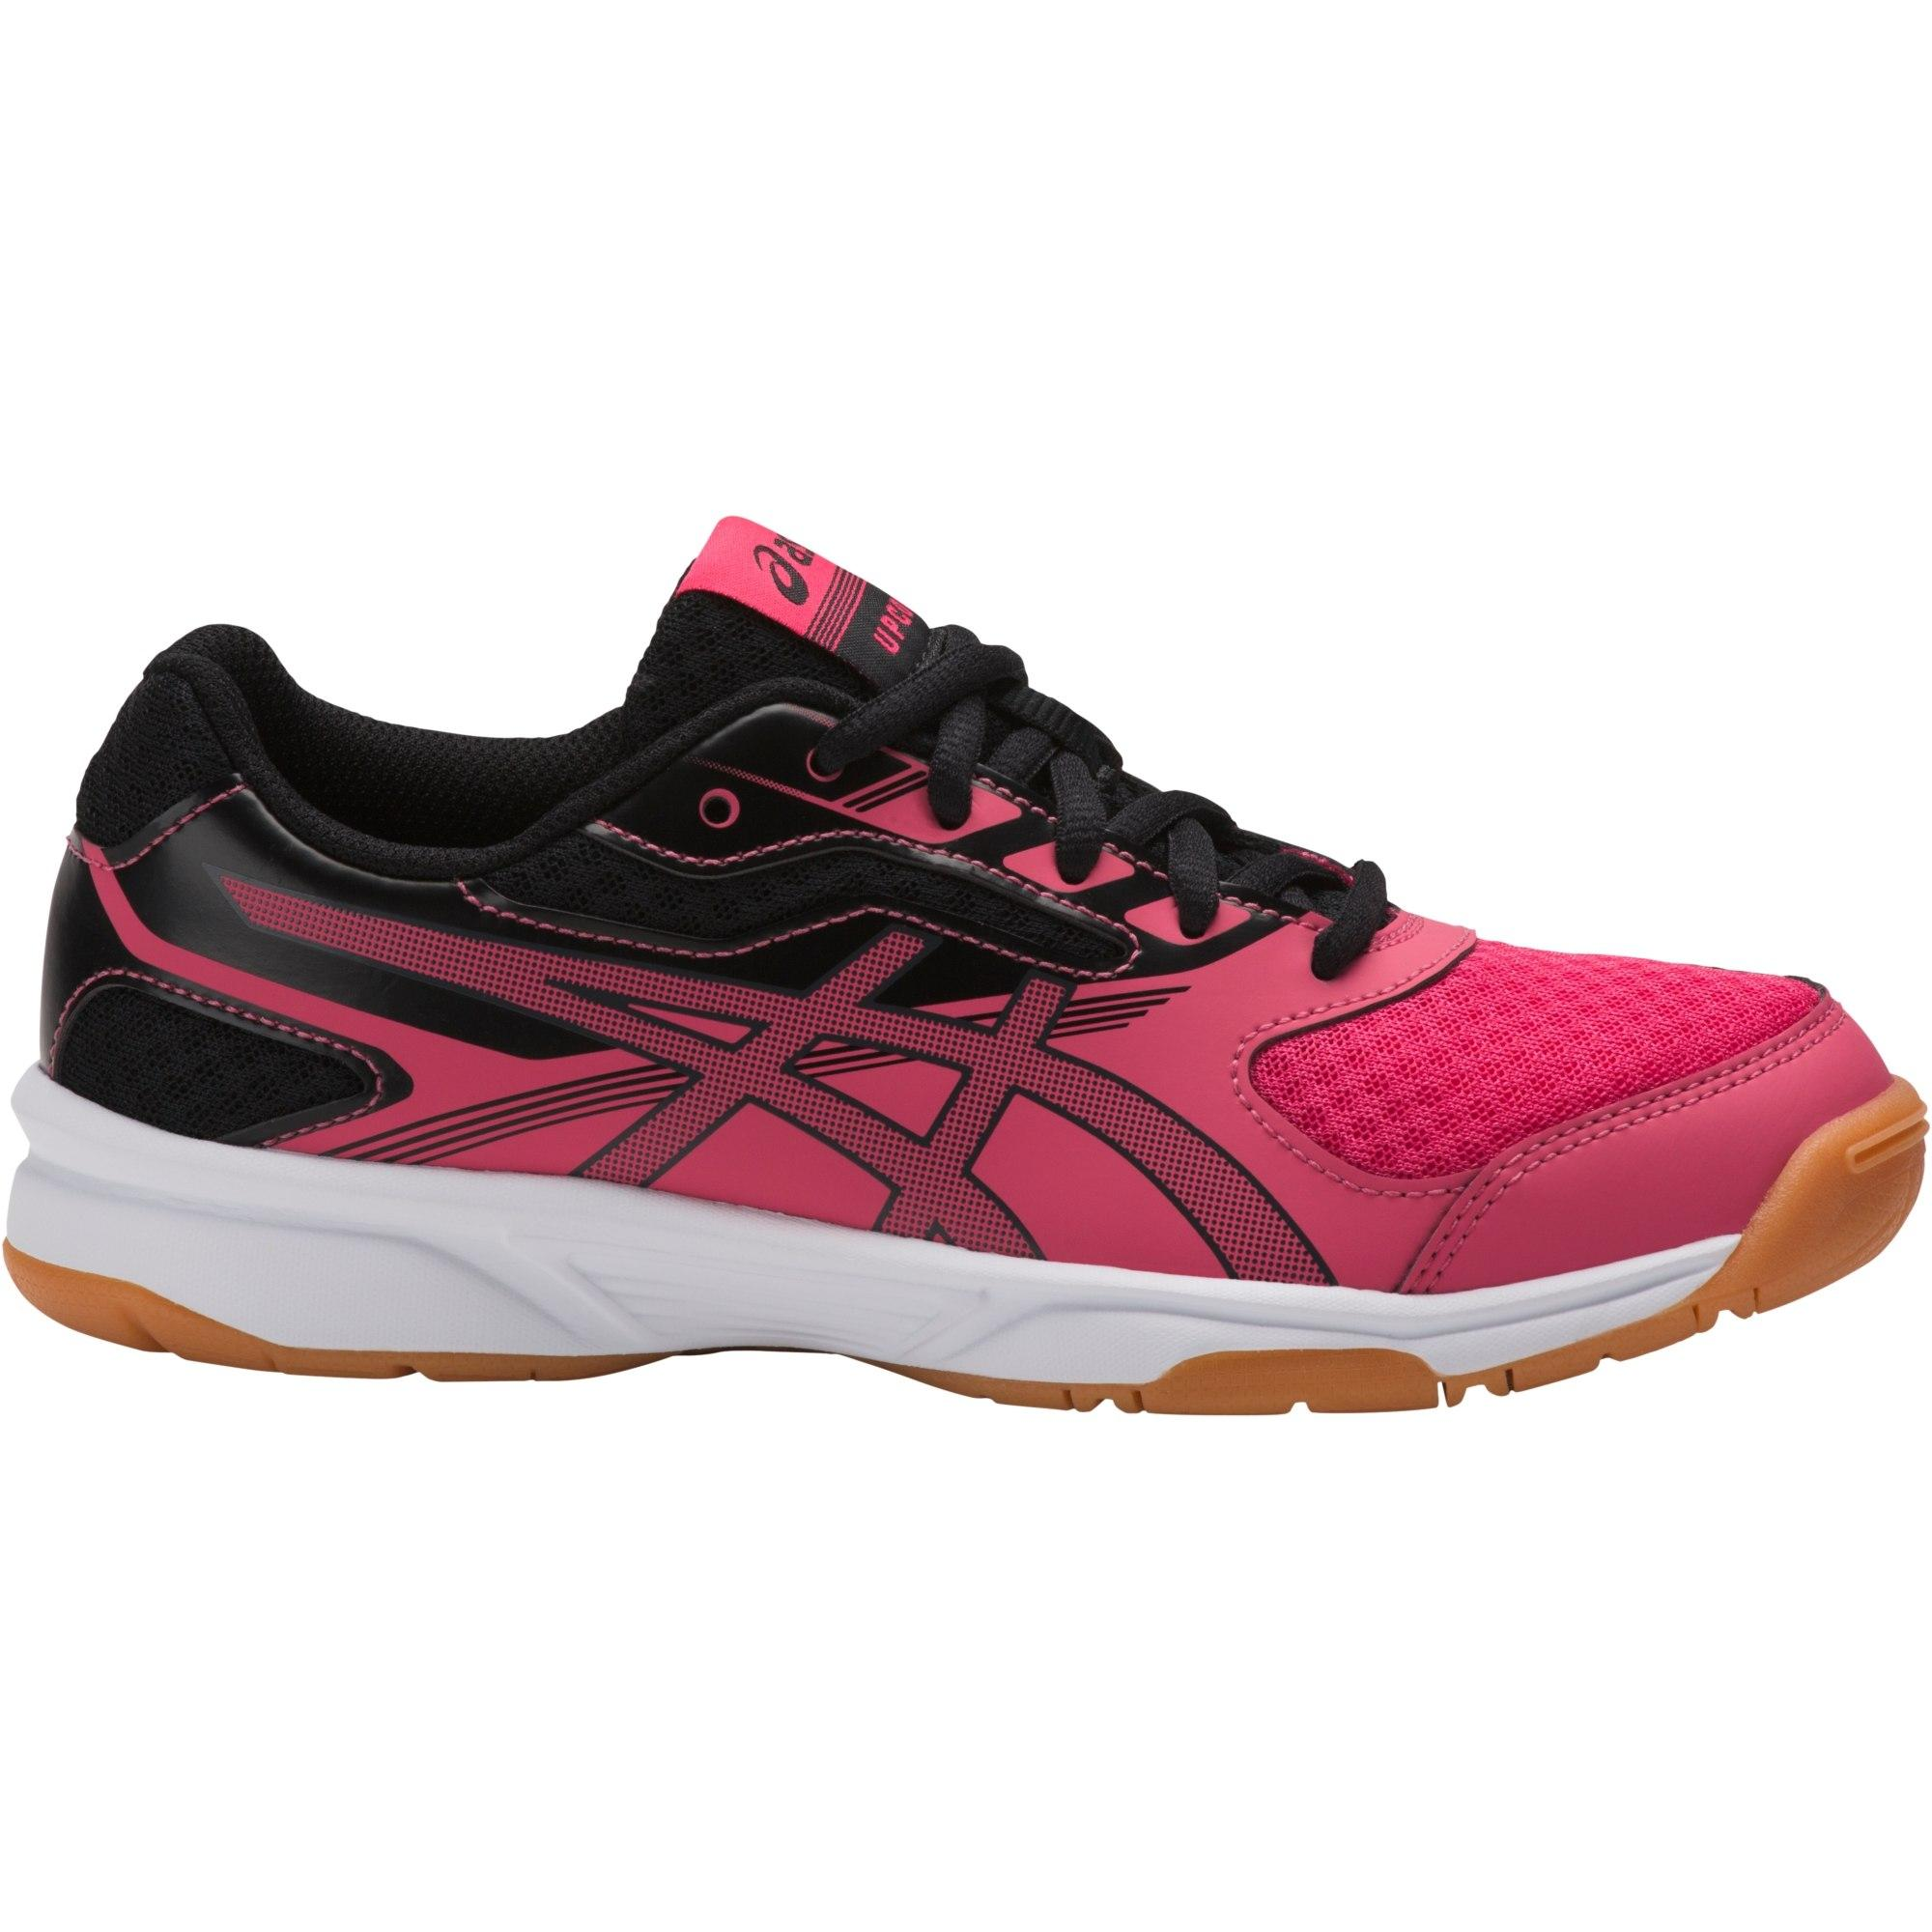 Asics Kids GEL-Upcourt 2 GS Indoor Court Shoes - Rouge Red Black -  Tennisnuts.com 7997319faab3b